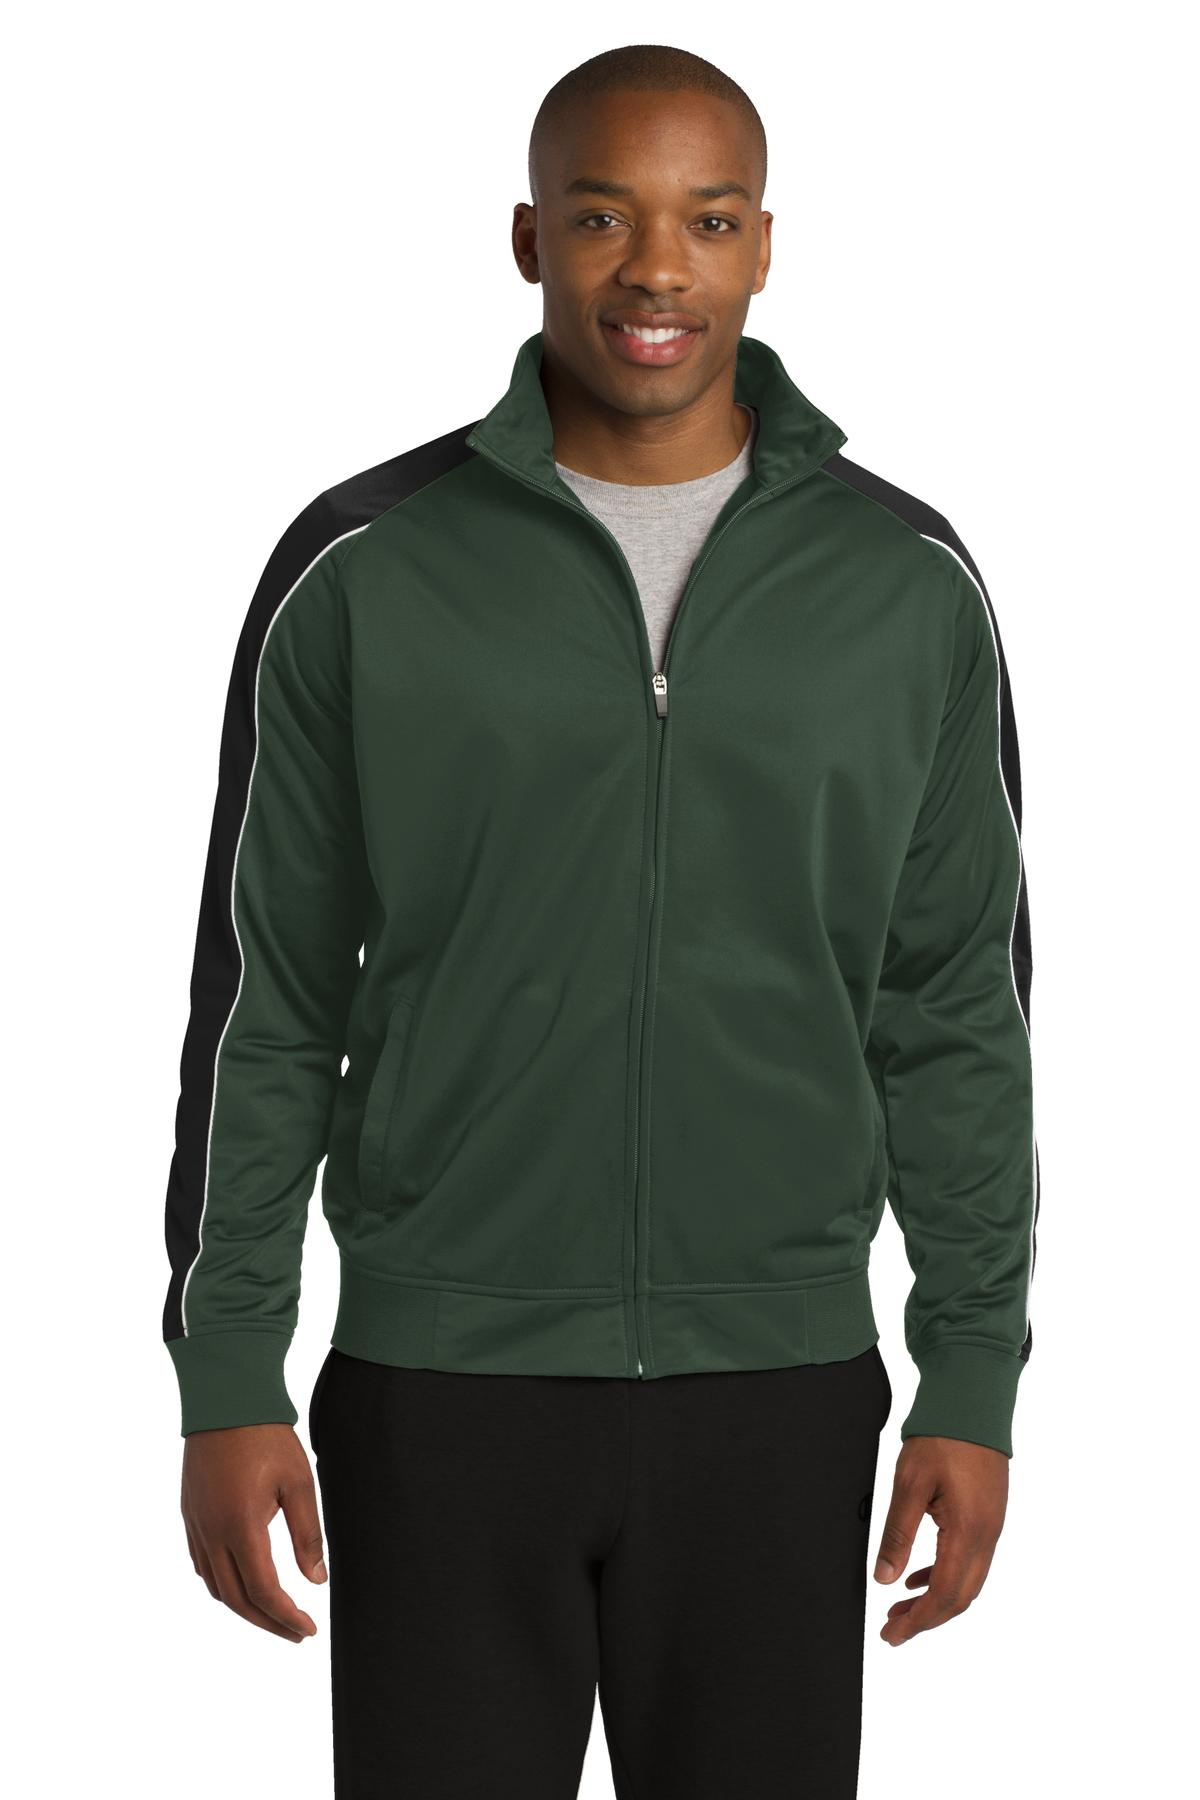 Outerwear-Athletic-Warm-Ups-20